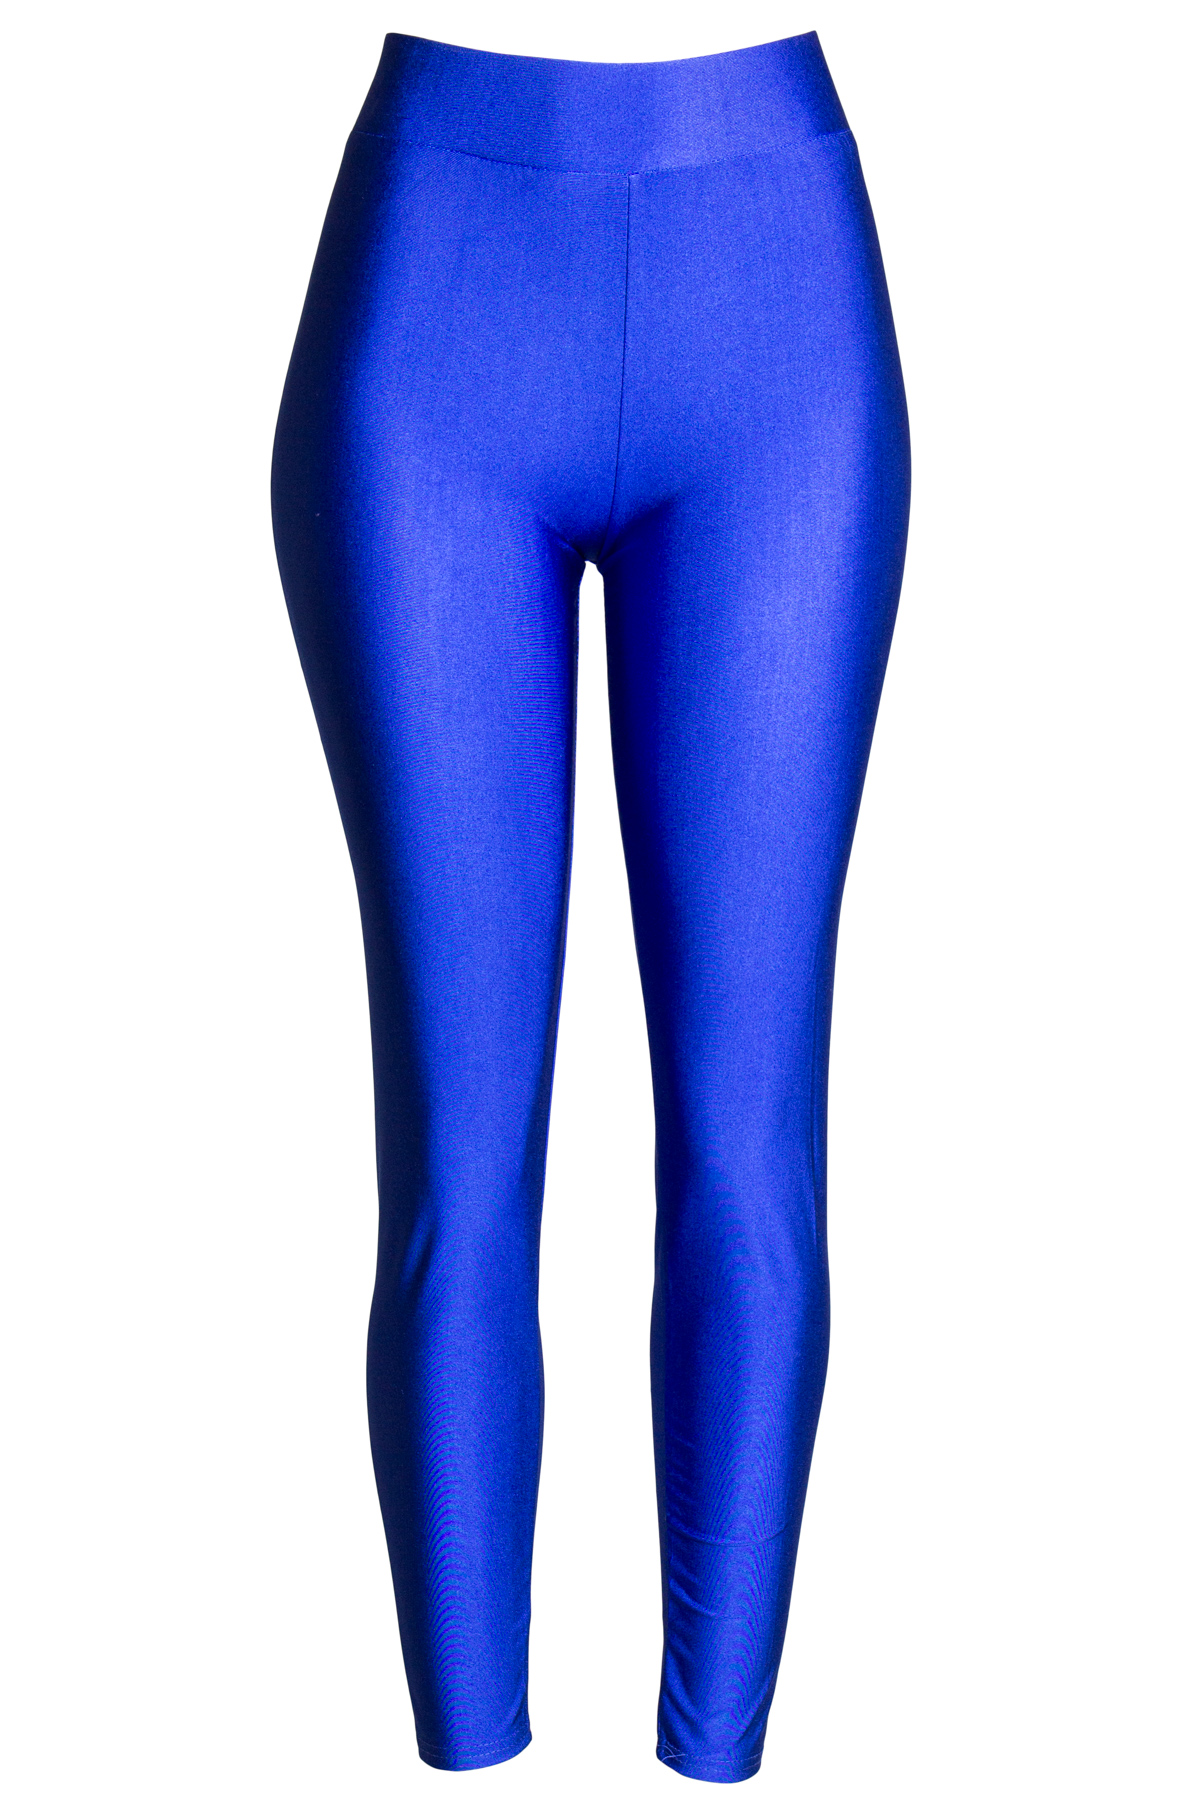 royal shiny leggings